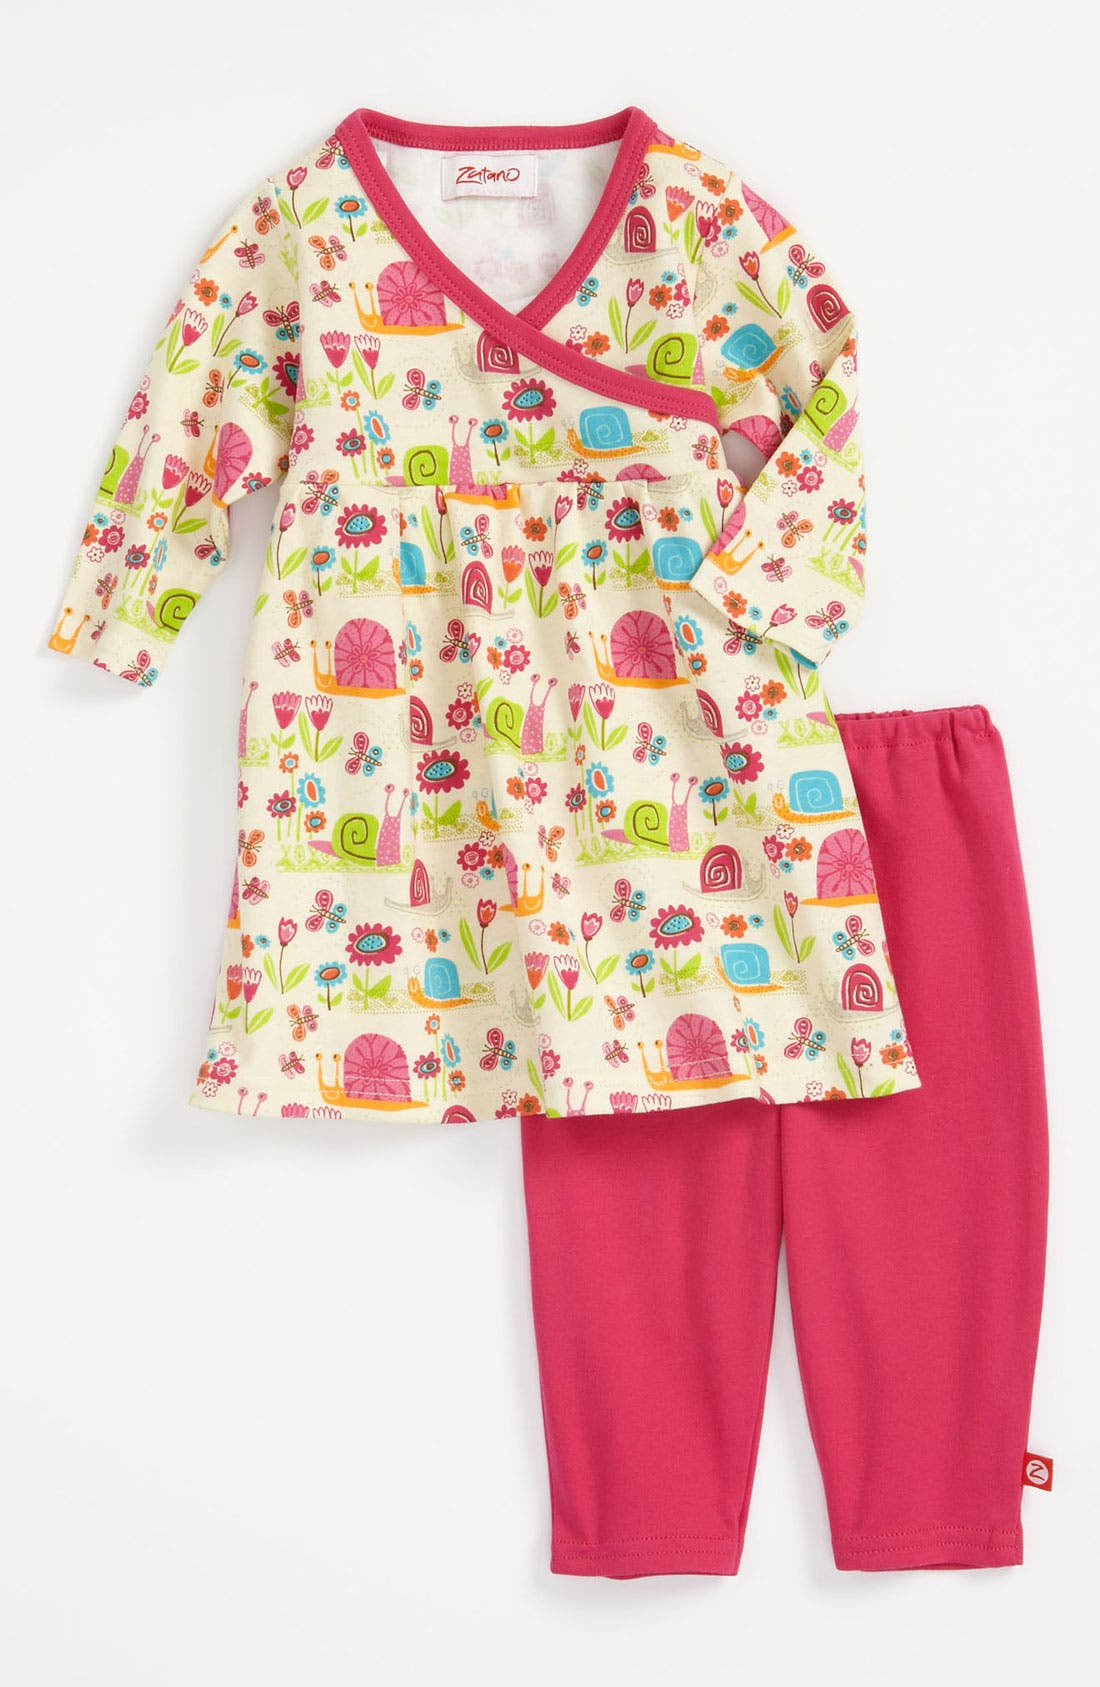 Alternate Image 1 Selected - Zutano 'Garden Snail' Dress & Leggings (Infant)